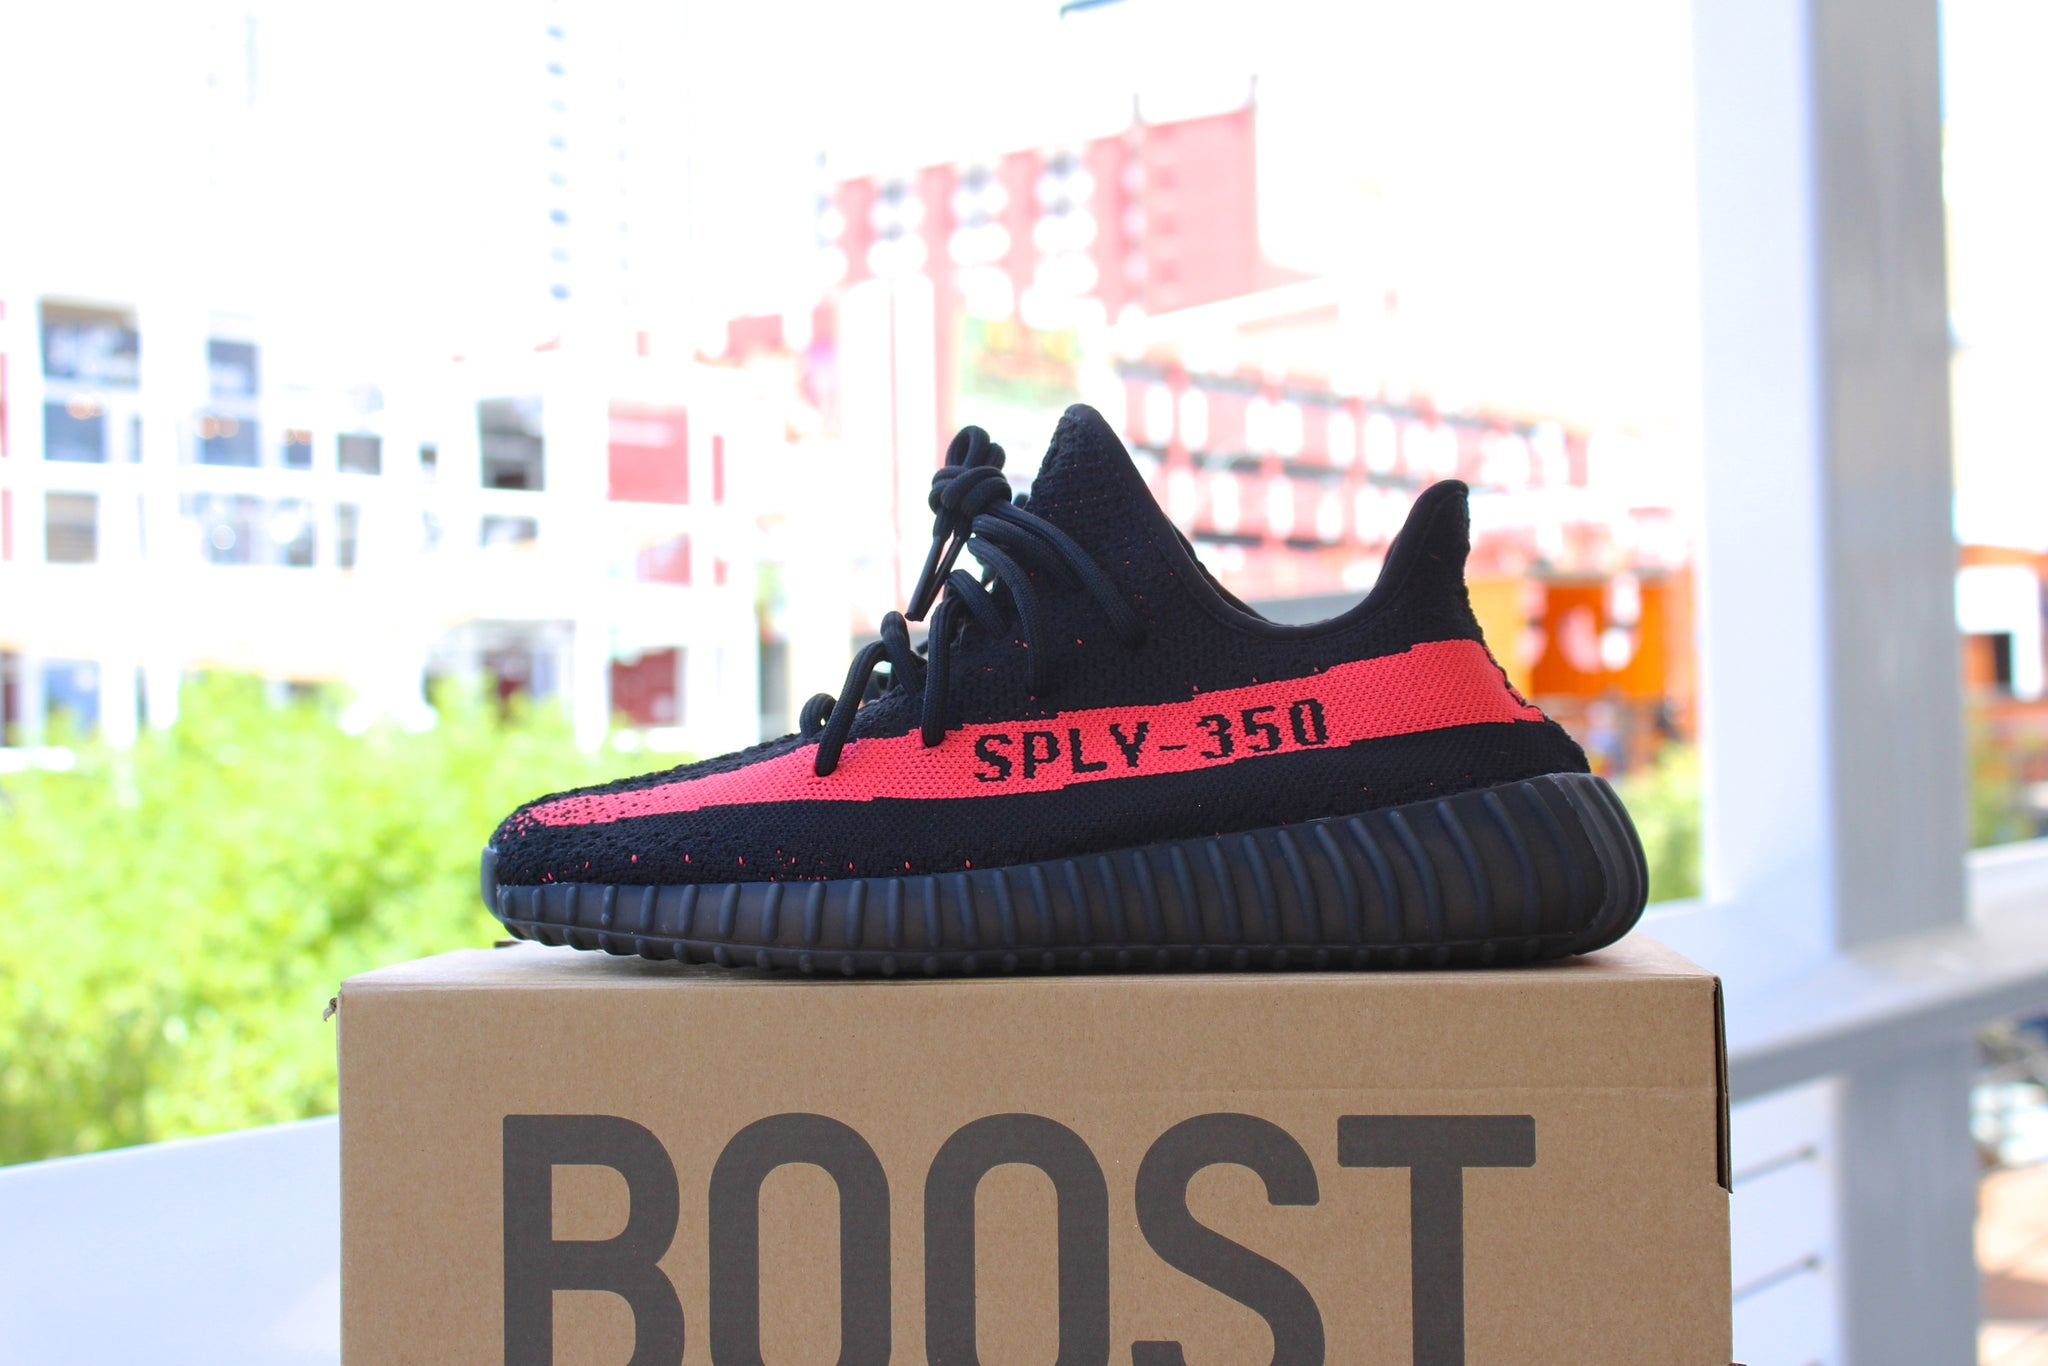 Adidas Yeezy Boost 350 V2 (Red Stripe)